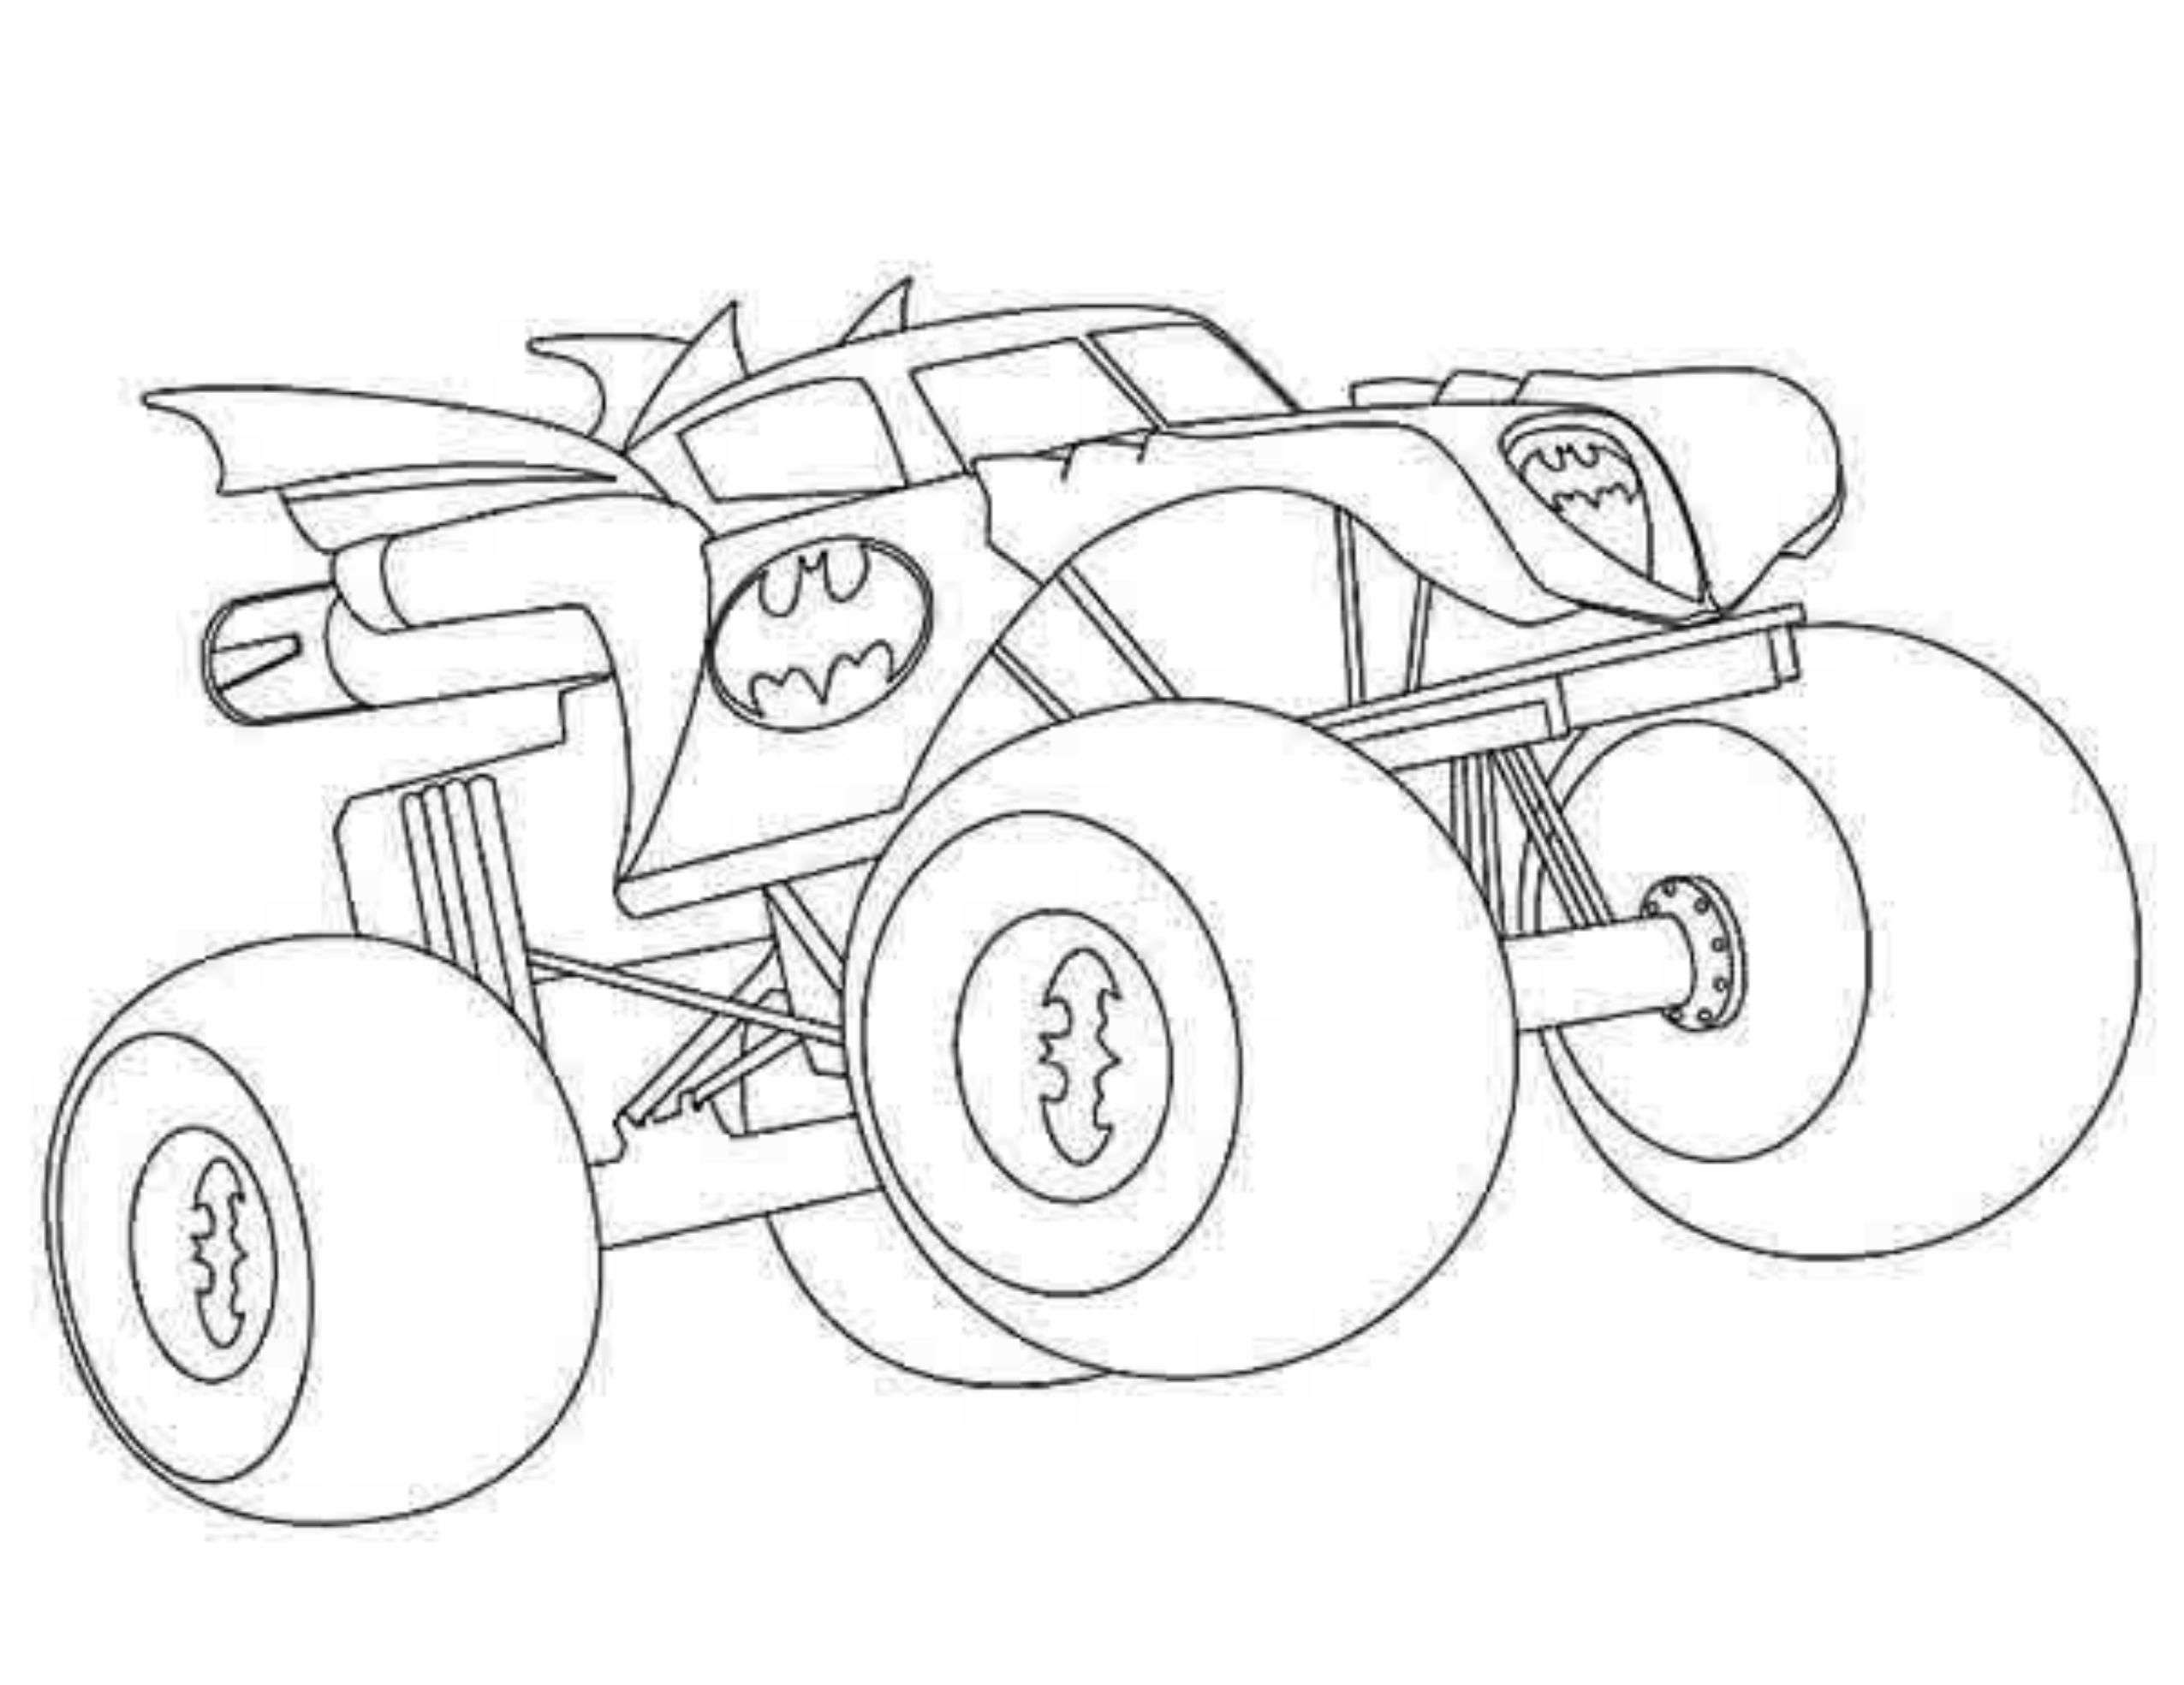 2551x1968 Bigfoot Monster Truck Coloring Pages, Bigfoot Monster Truck